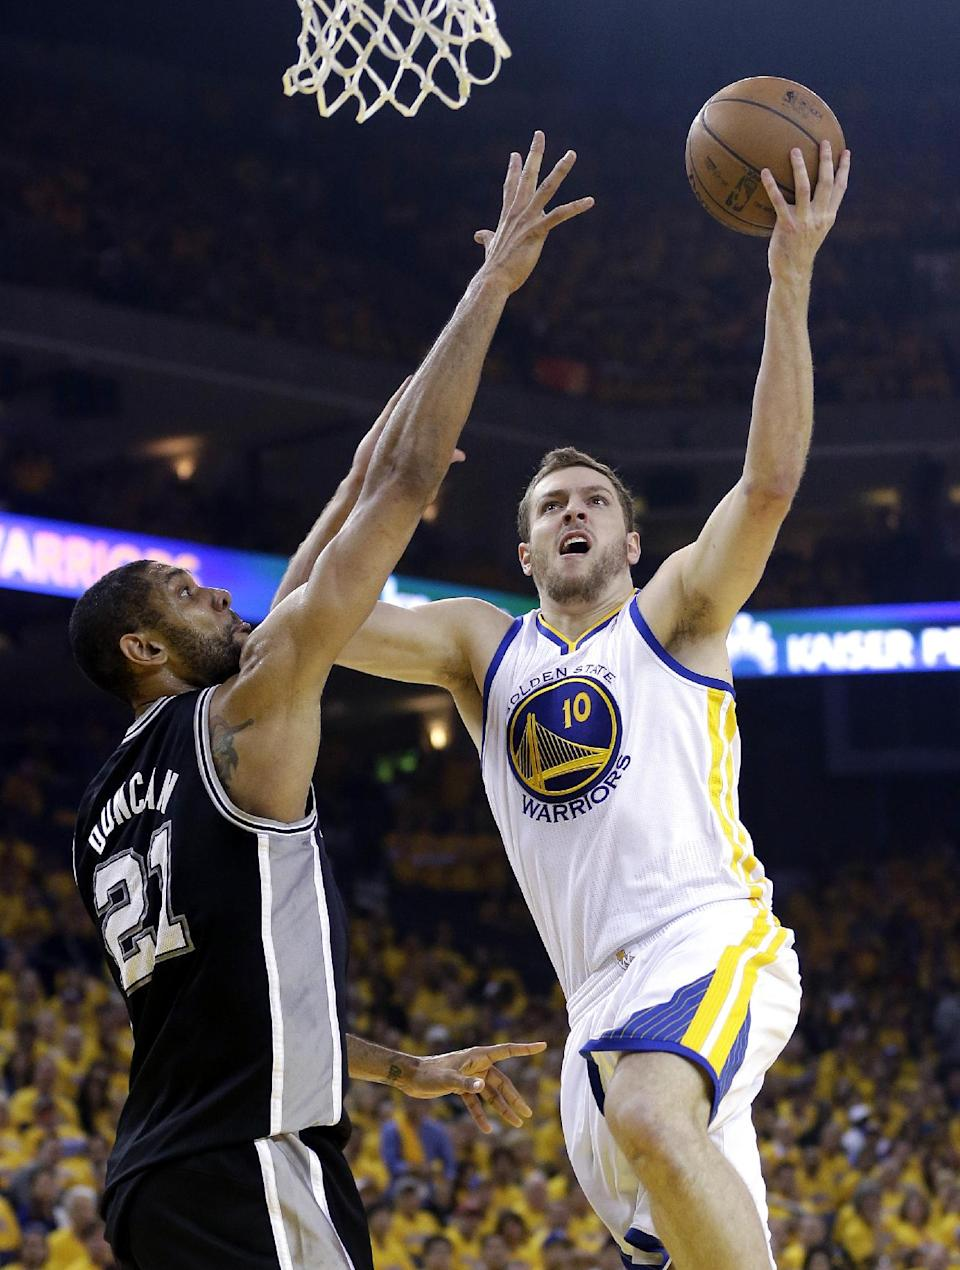 Golden State Warriors forward David Lee (10) goes for a lay-up over San Antonio Spurs forward Tim Duncan (21) in the first quarter of Game 6 of a Western Conference semifinal NBA basketball playoff series in Oakland, Calif., Thursday, May 16, 2013. (AP Photo/Marcio Jose Sanchez)